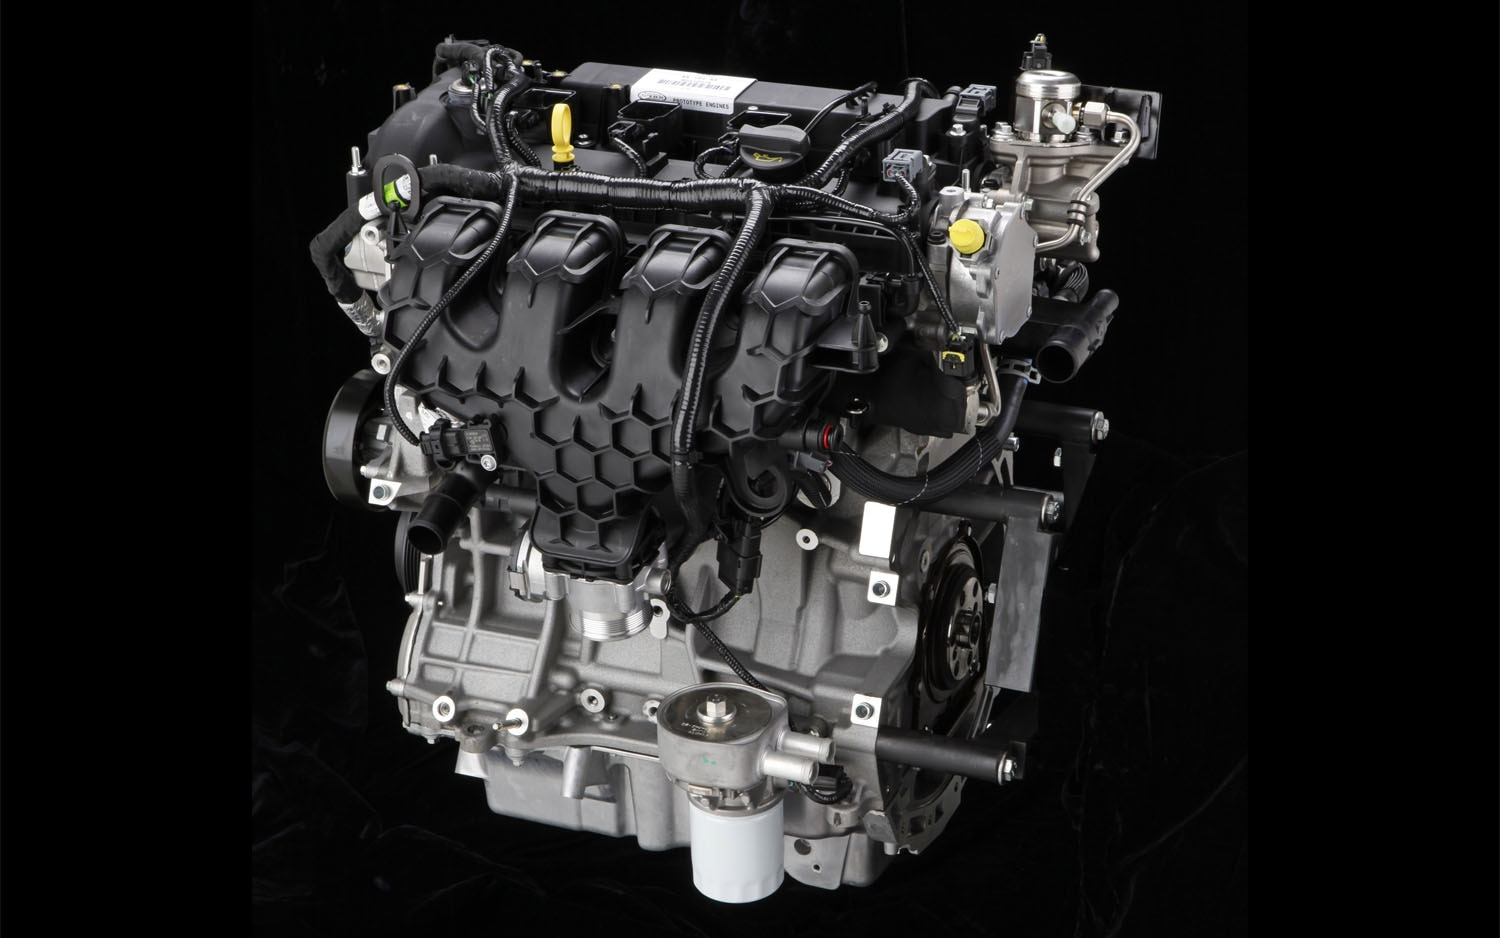 ford the 2 0 liter ecoboost will become a crate engine soon 03 jetta 2.0 engine diagram 1979 vw engine diagram 2 0 liters #6